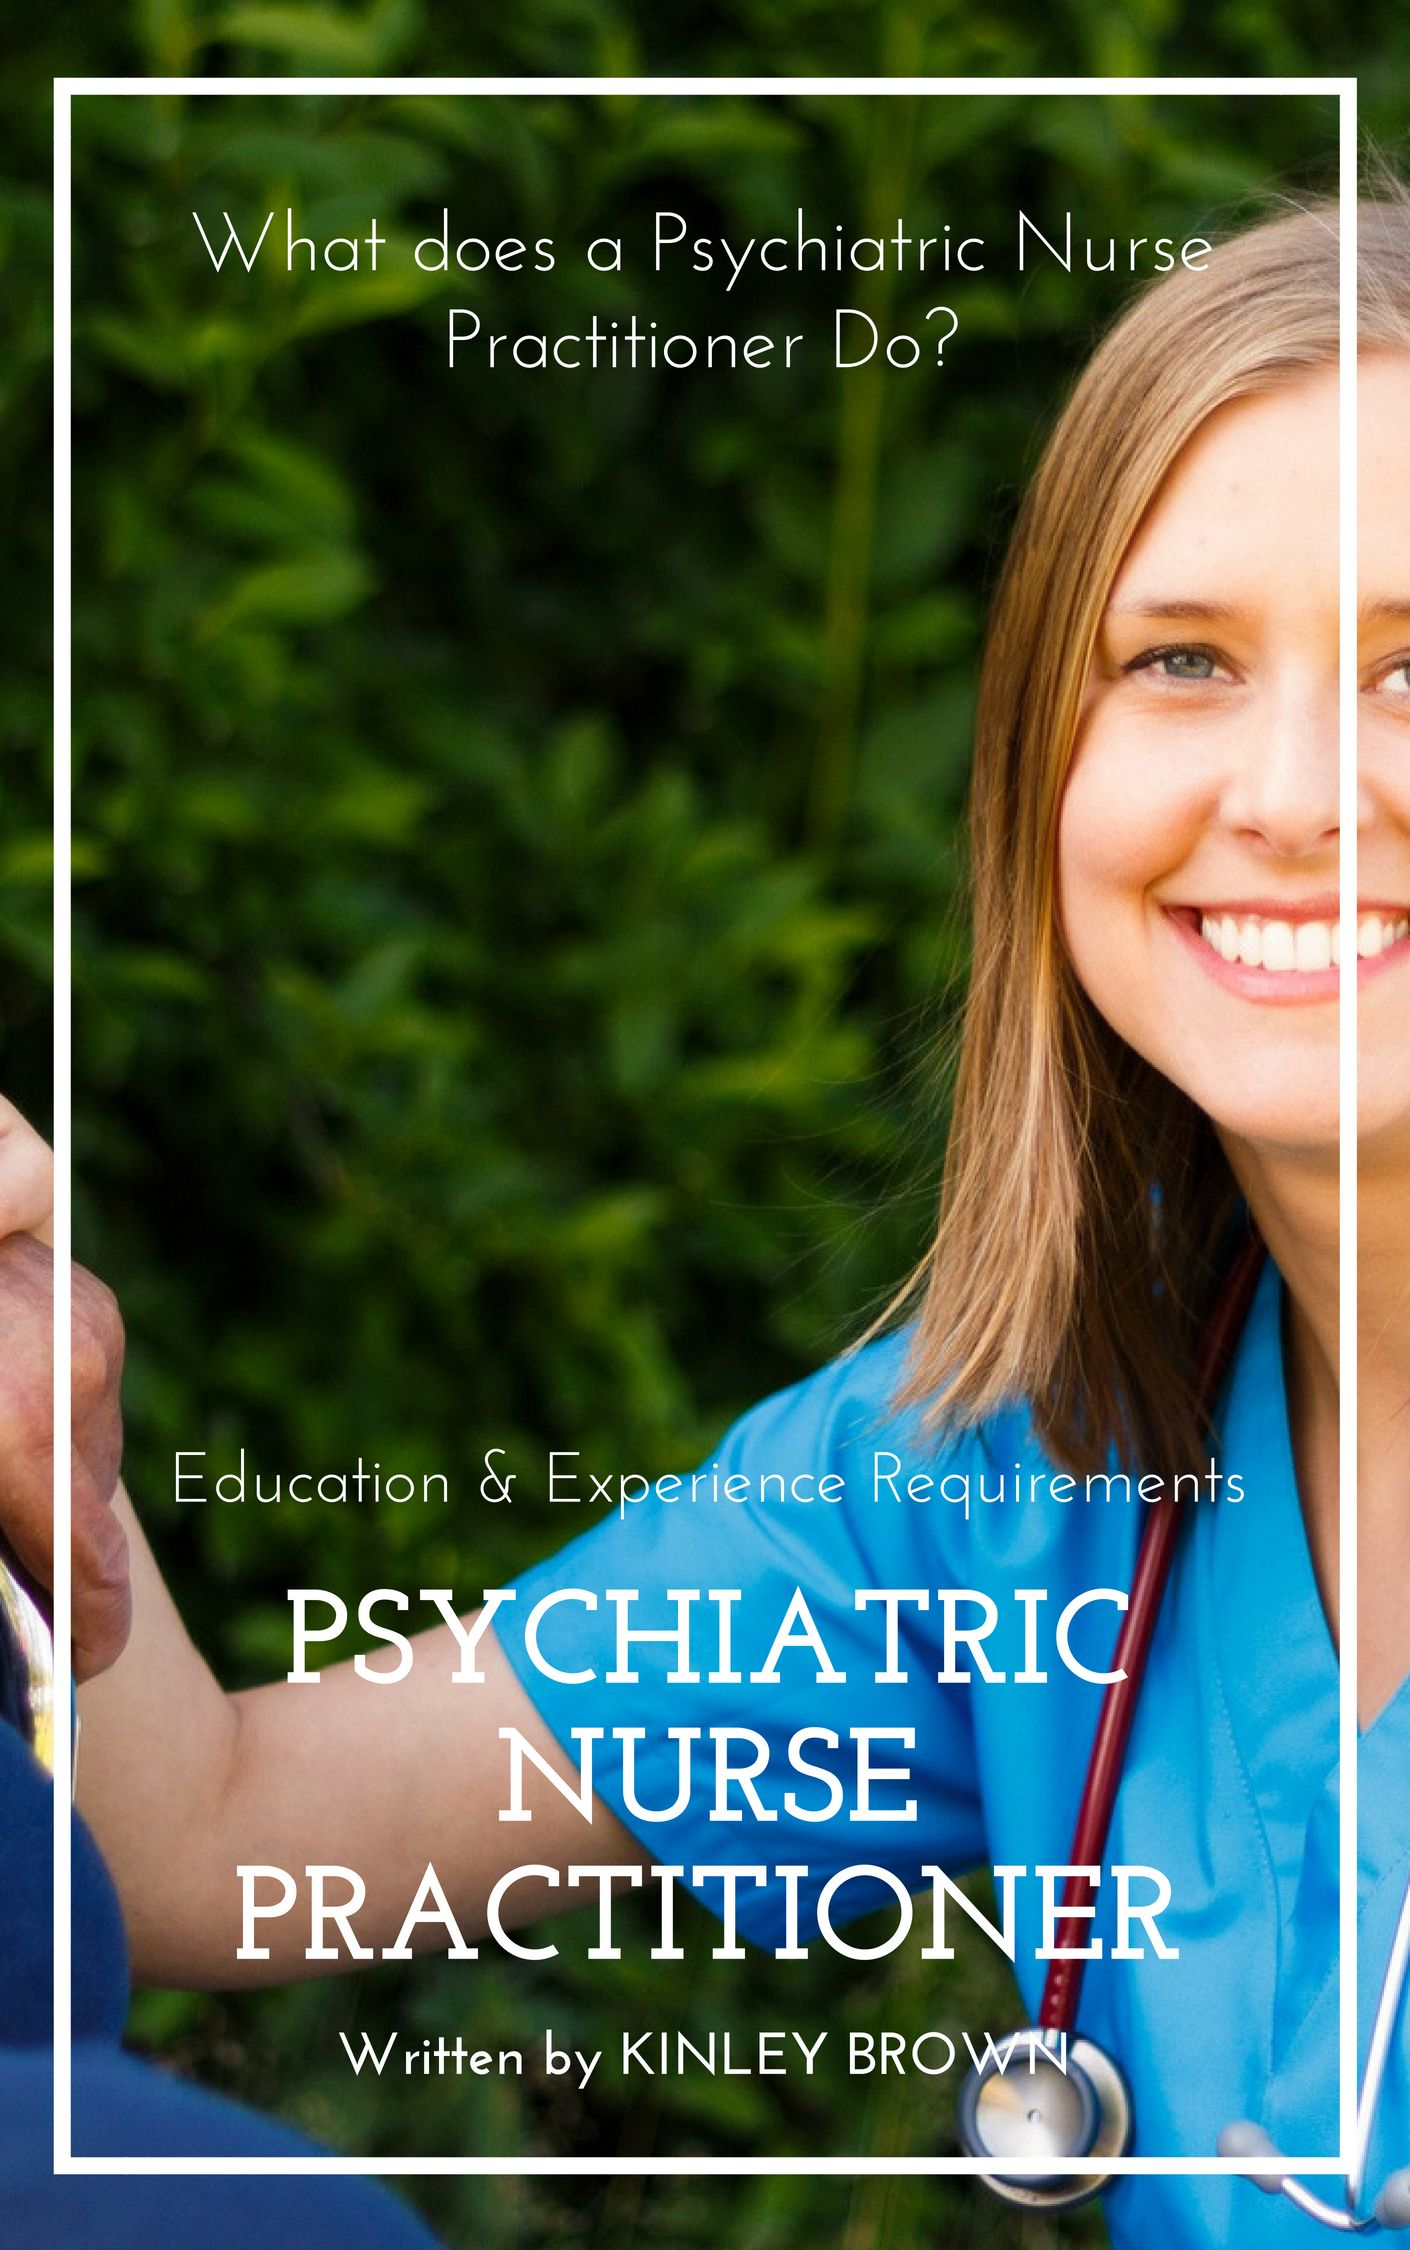 What can you do as a psychiatric nurse practitioner? Know